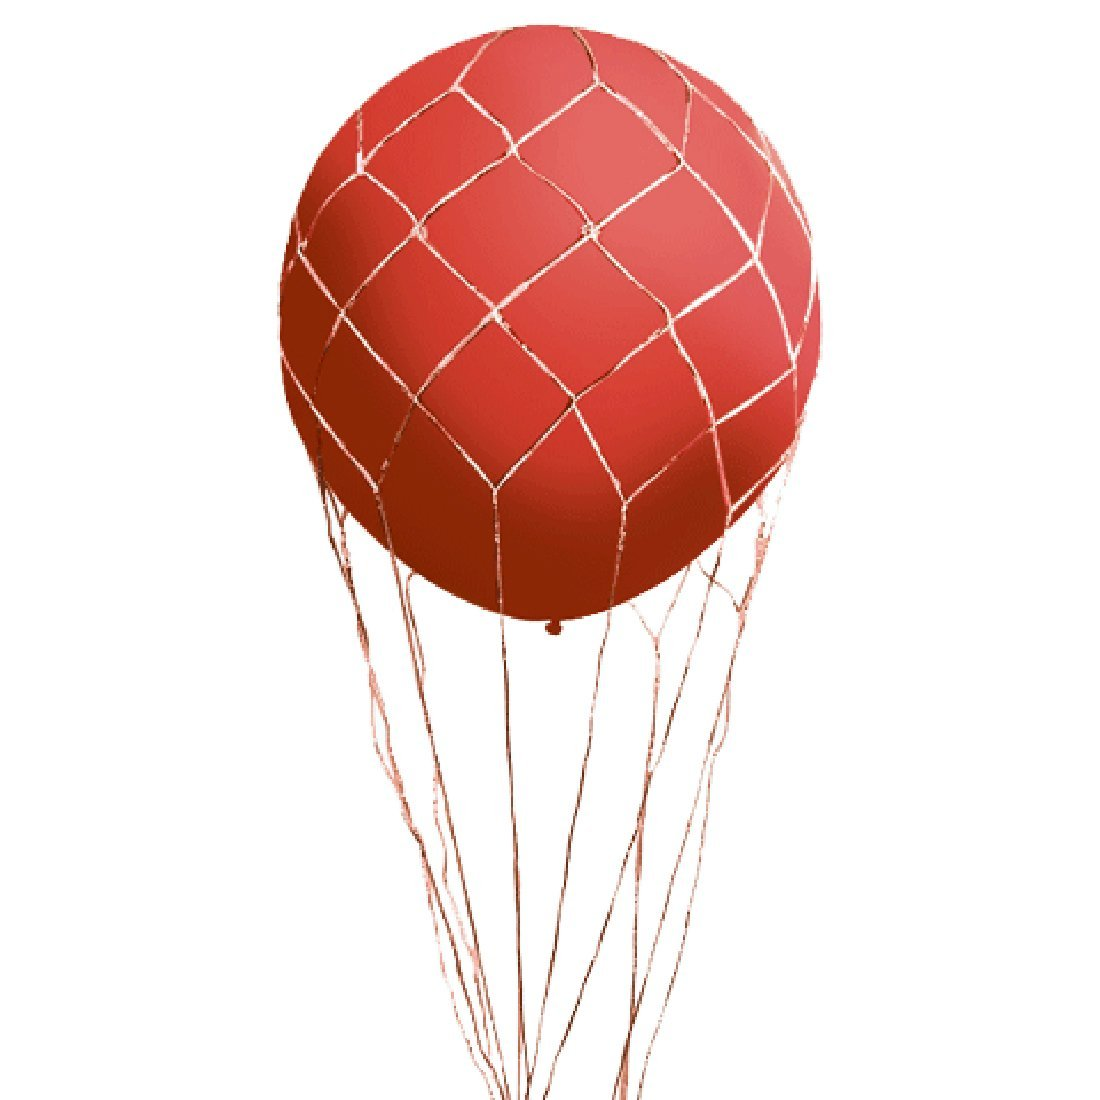 Steampunk party theme to taste themes for Balloon nets for centerpieces